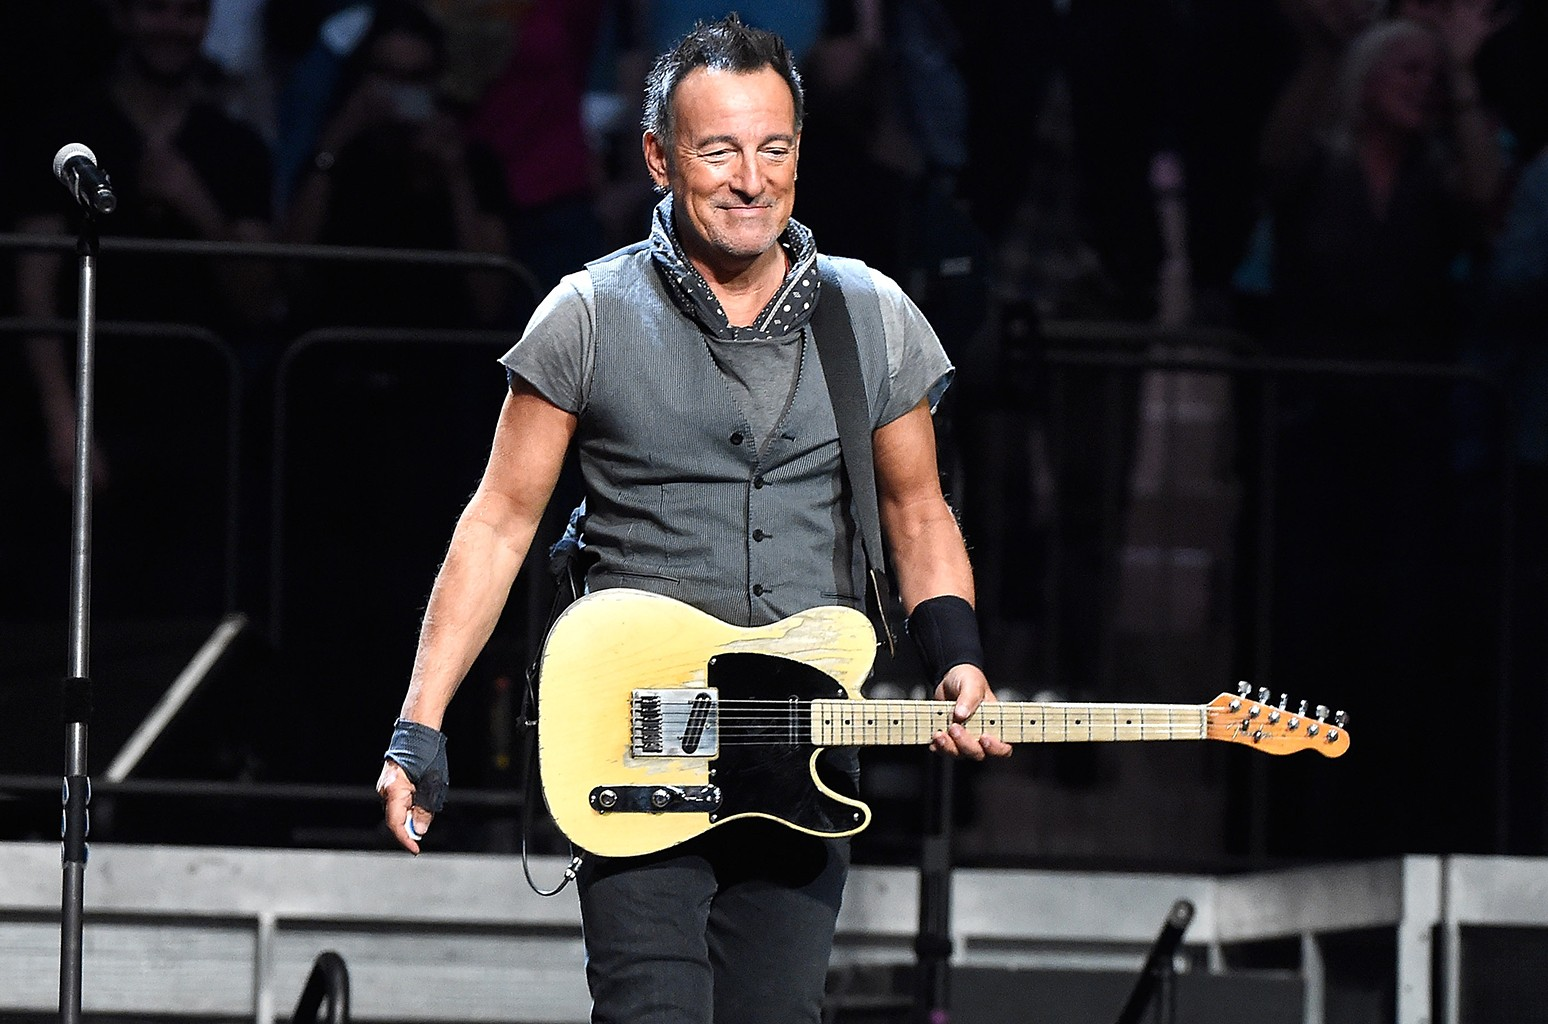 Bruce Springsteen performs with The E Street Band